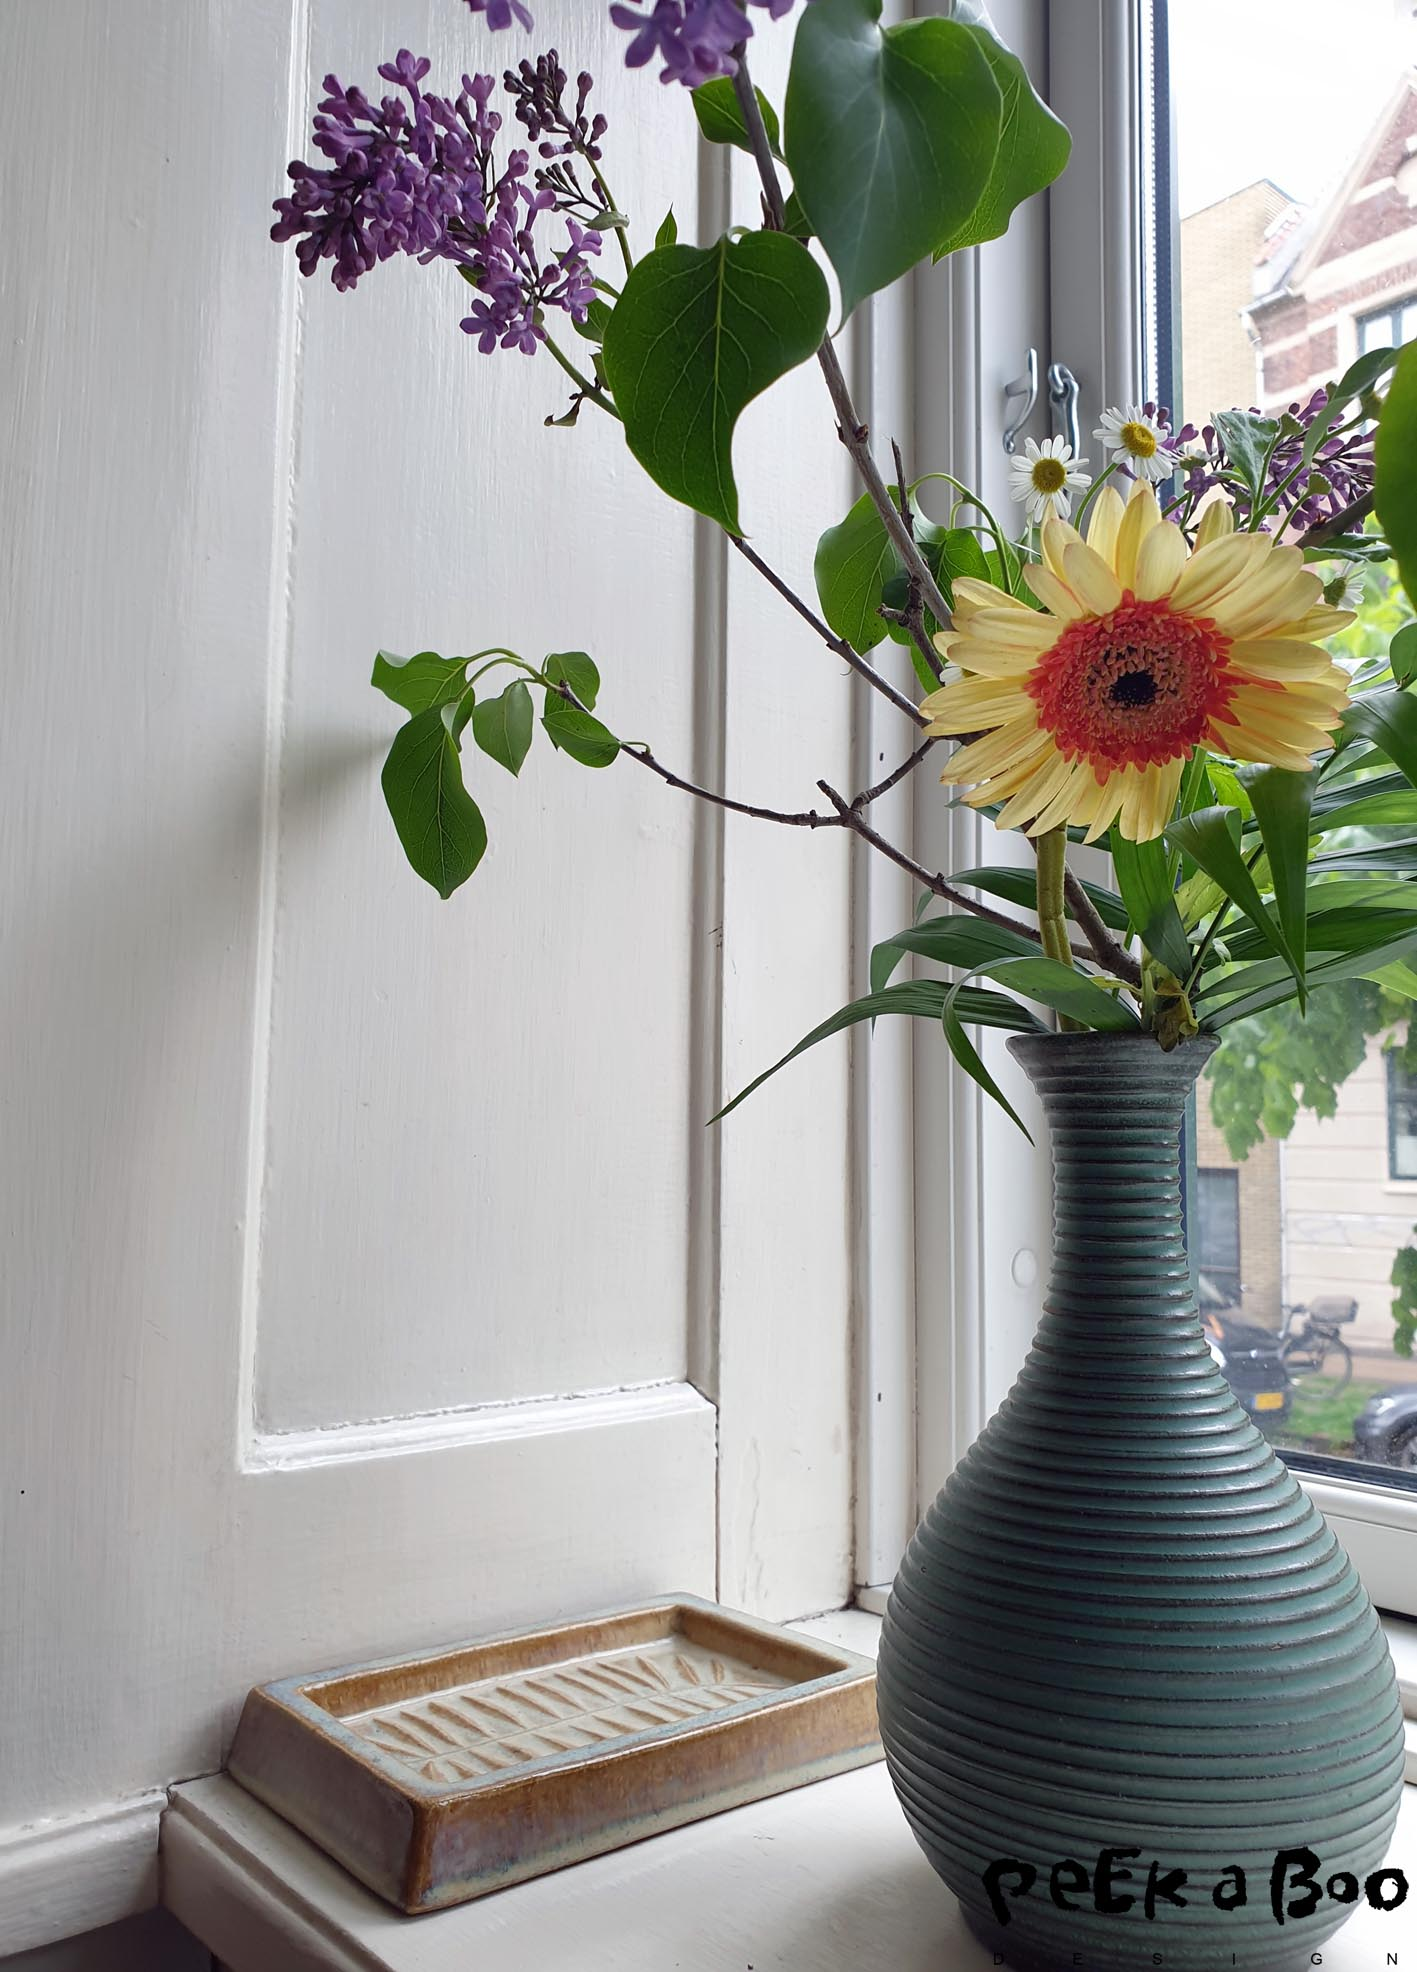 In my window sill right now I have flowers and fleamarket finds. THe vase is from the danish ceramic Michael Andersen and the tray is from Søholm both lived and worked on the island of Bornholm which is known for it's ceramics.